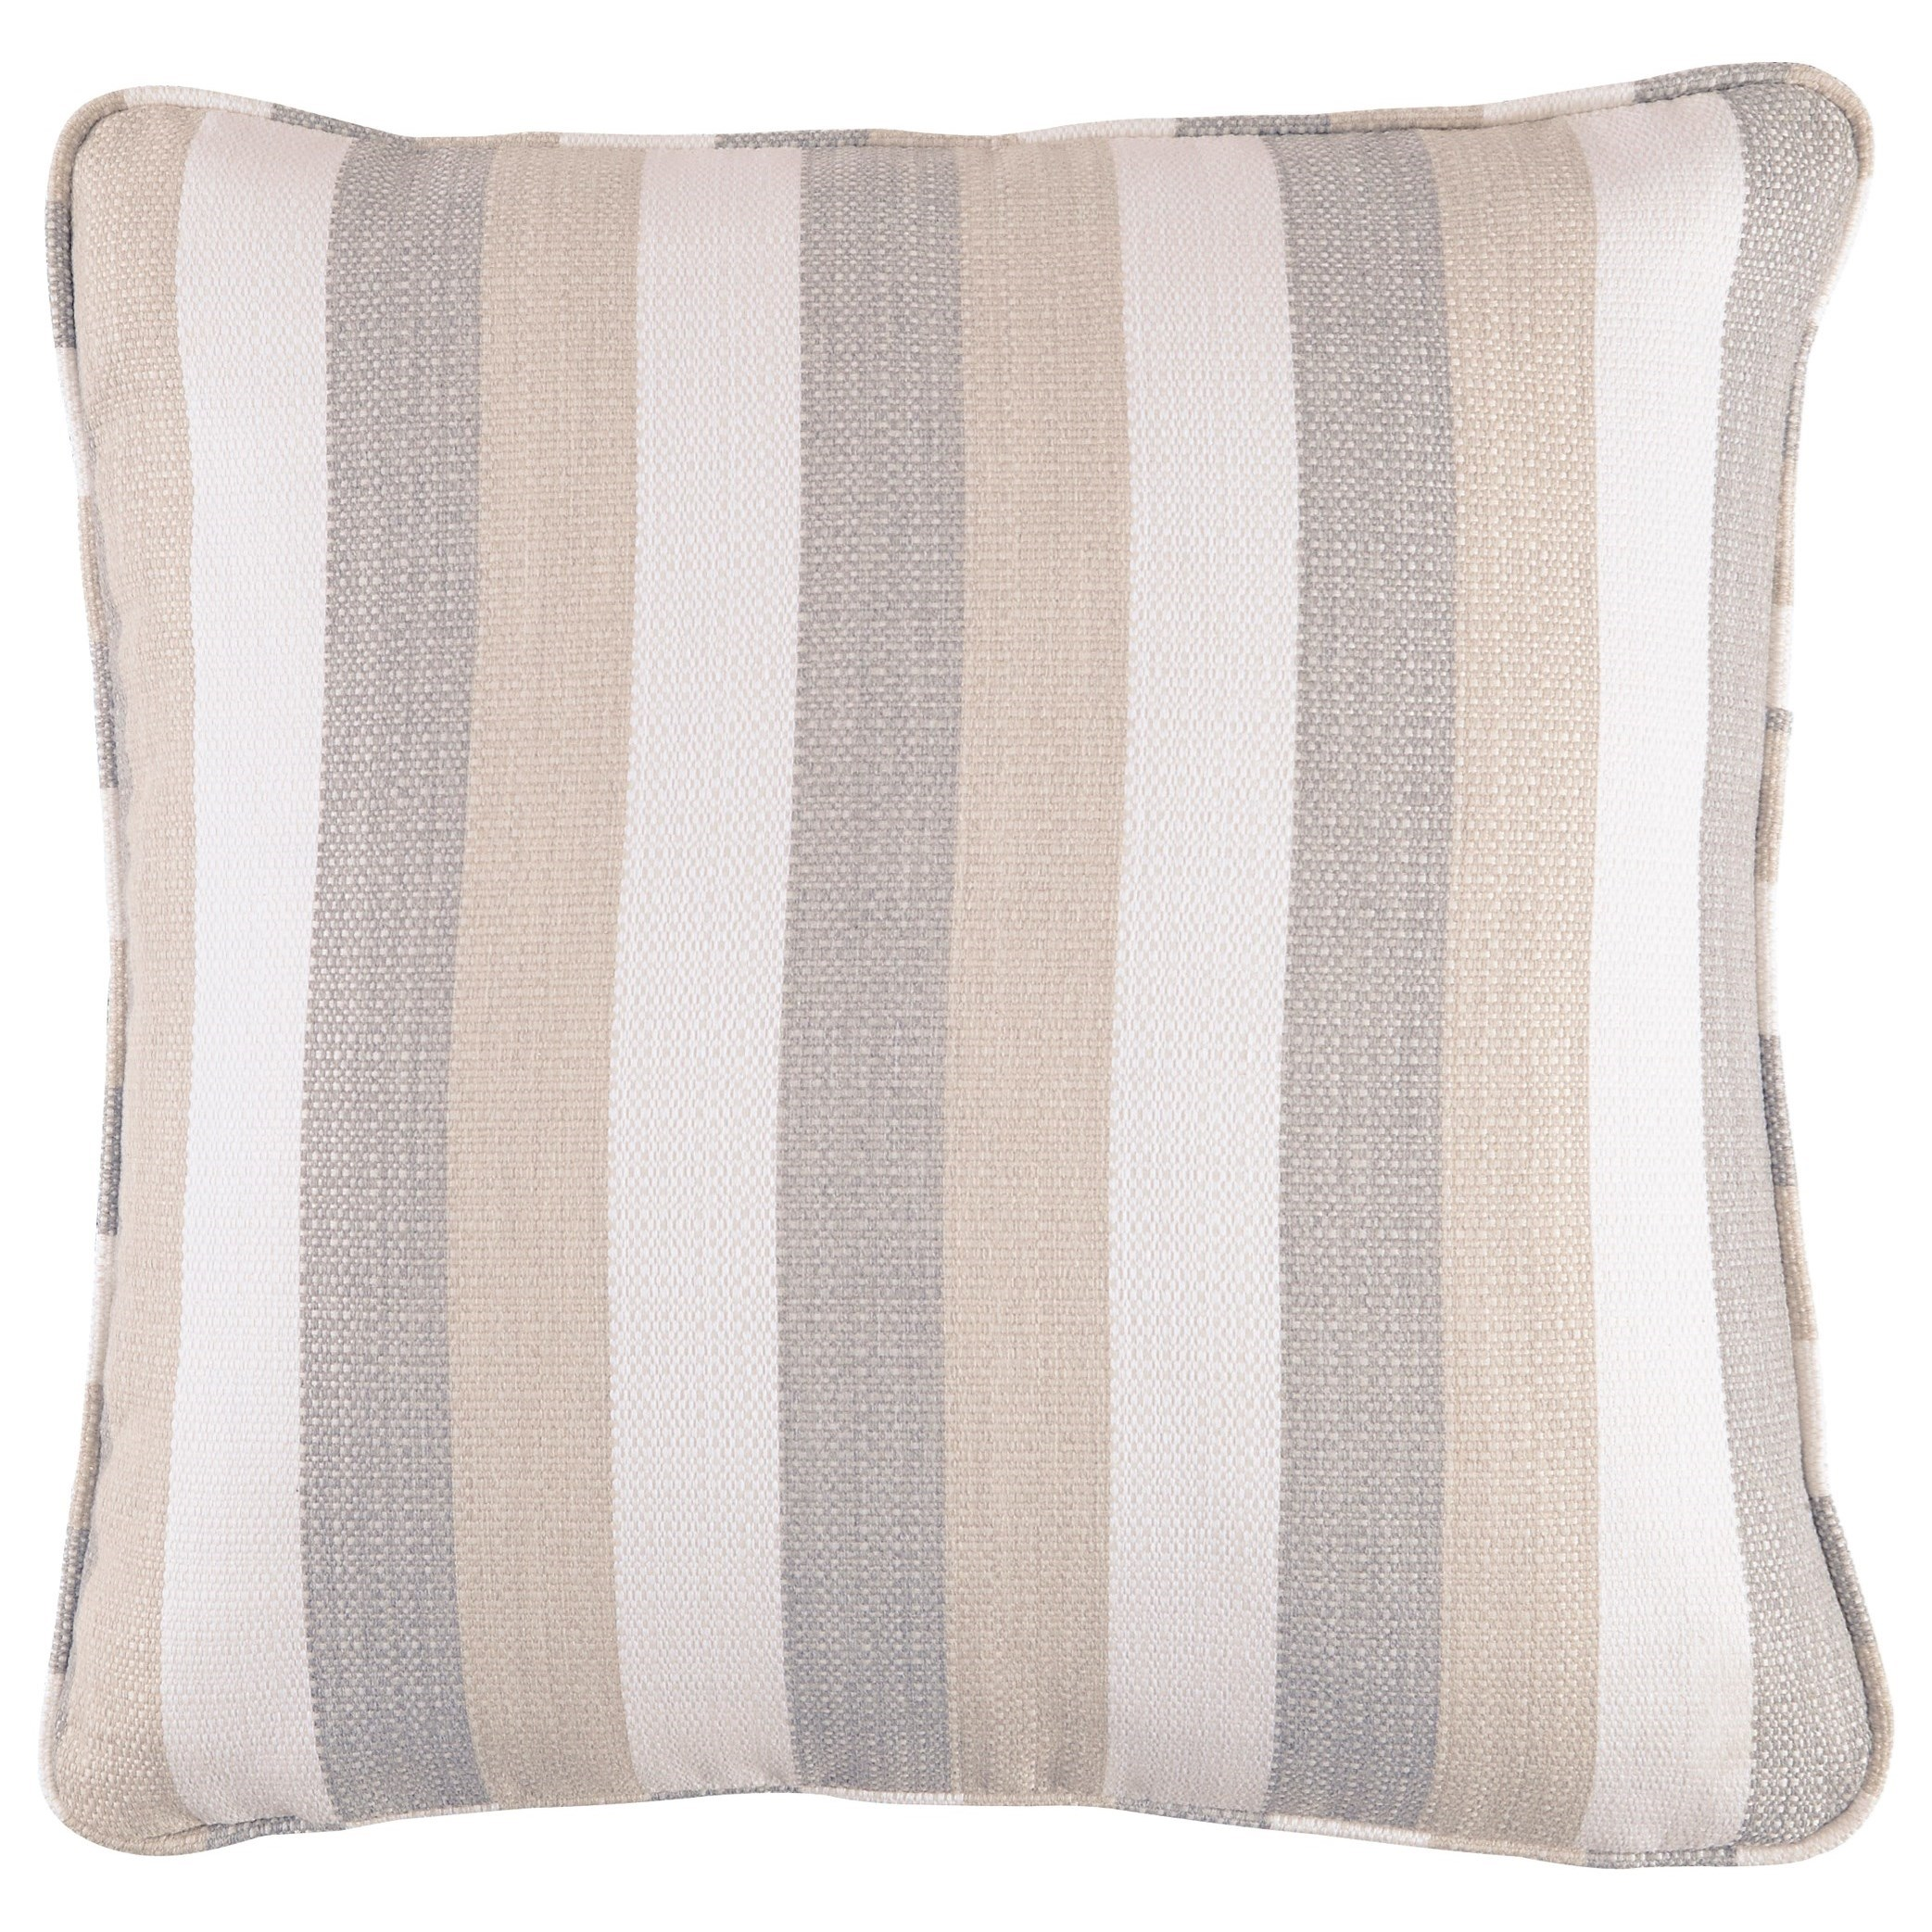 Mistelee Tan/Cream/Gray Pillow